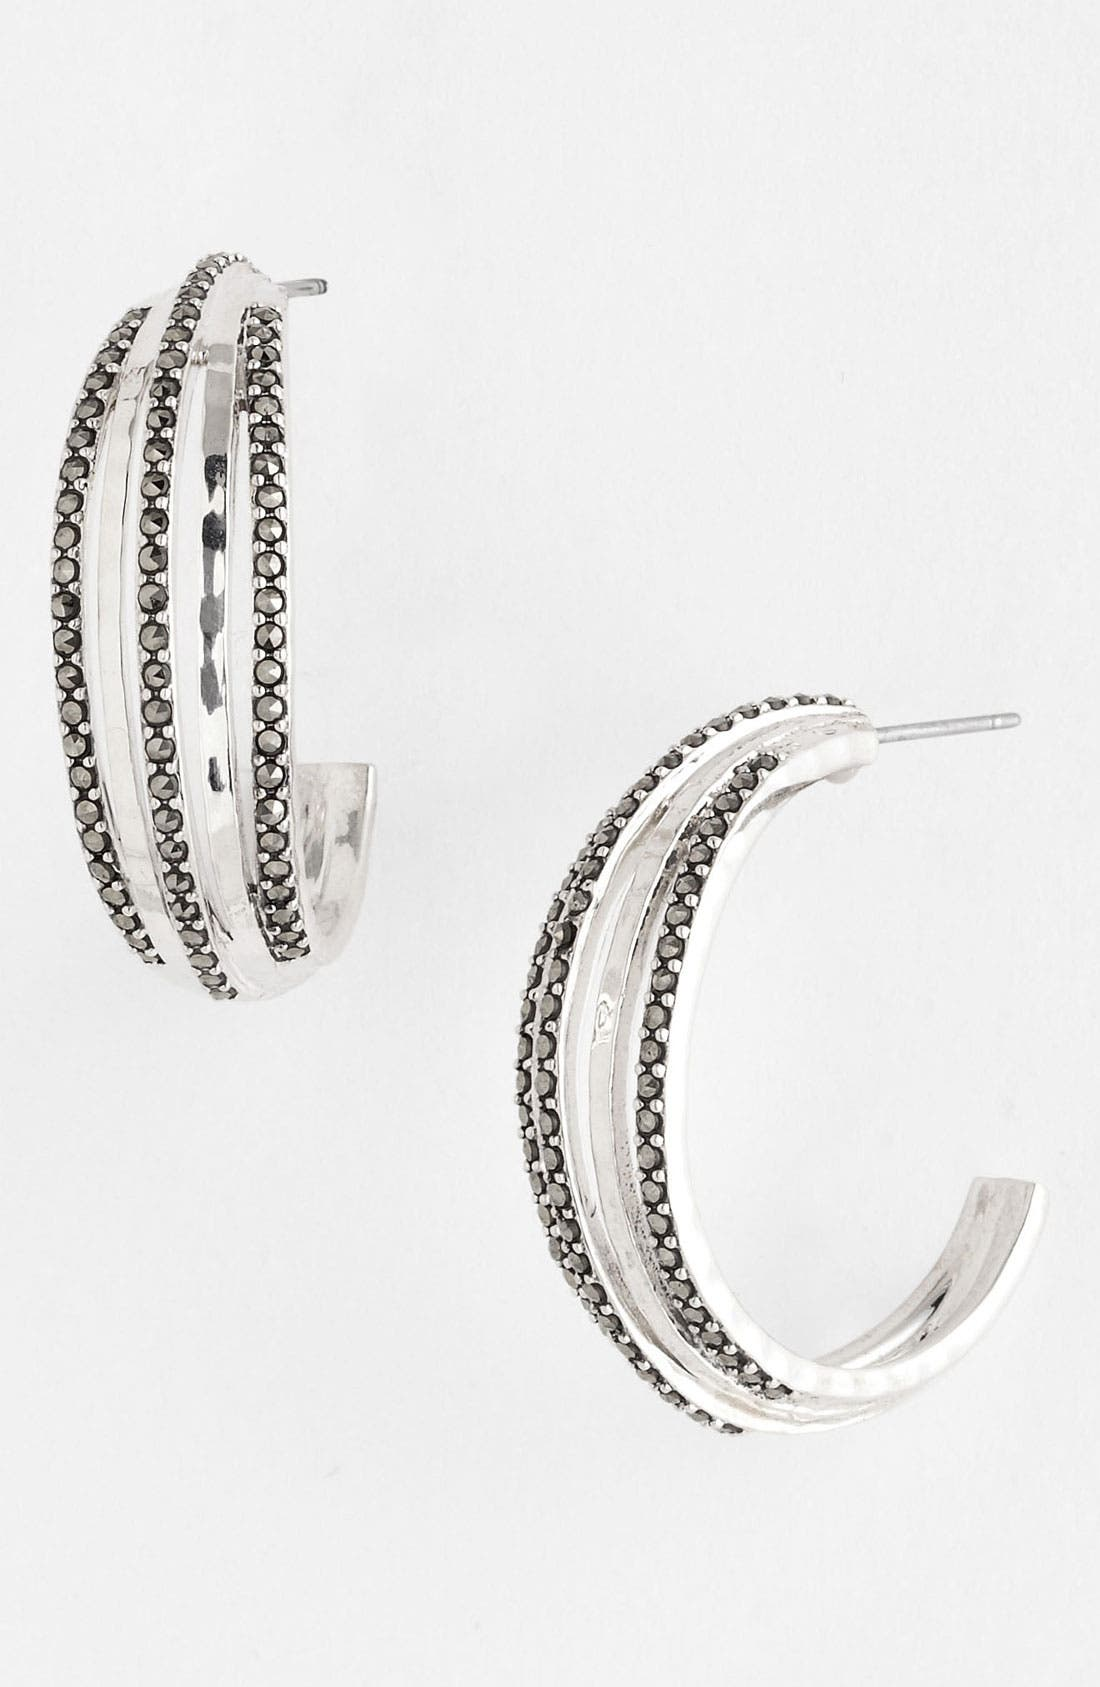 Main Image - Judith Jack 'Fluidity' Hoop Earrings